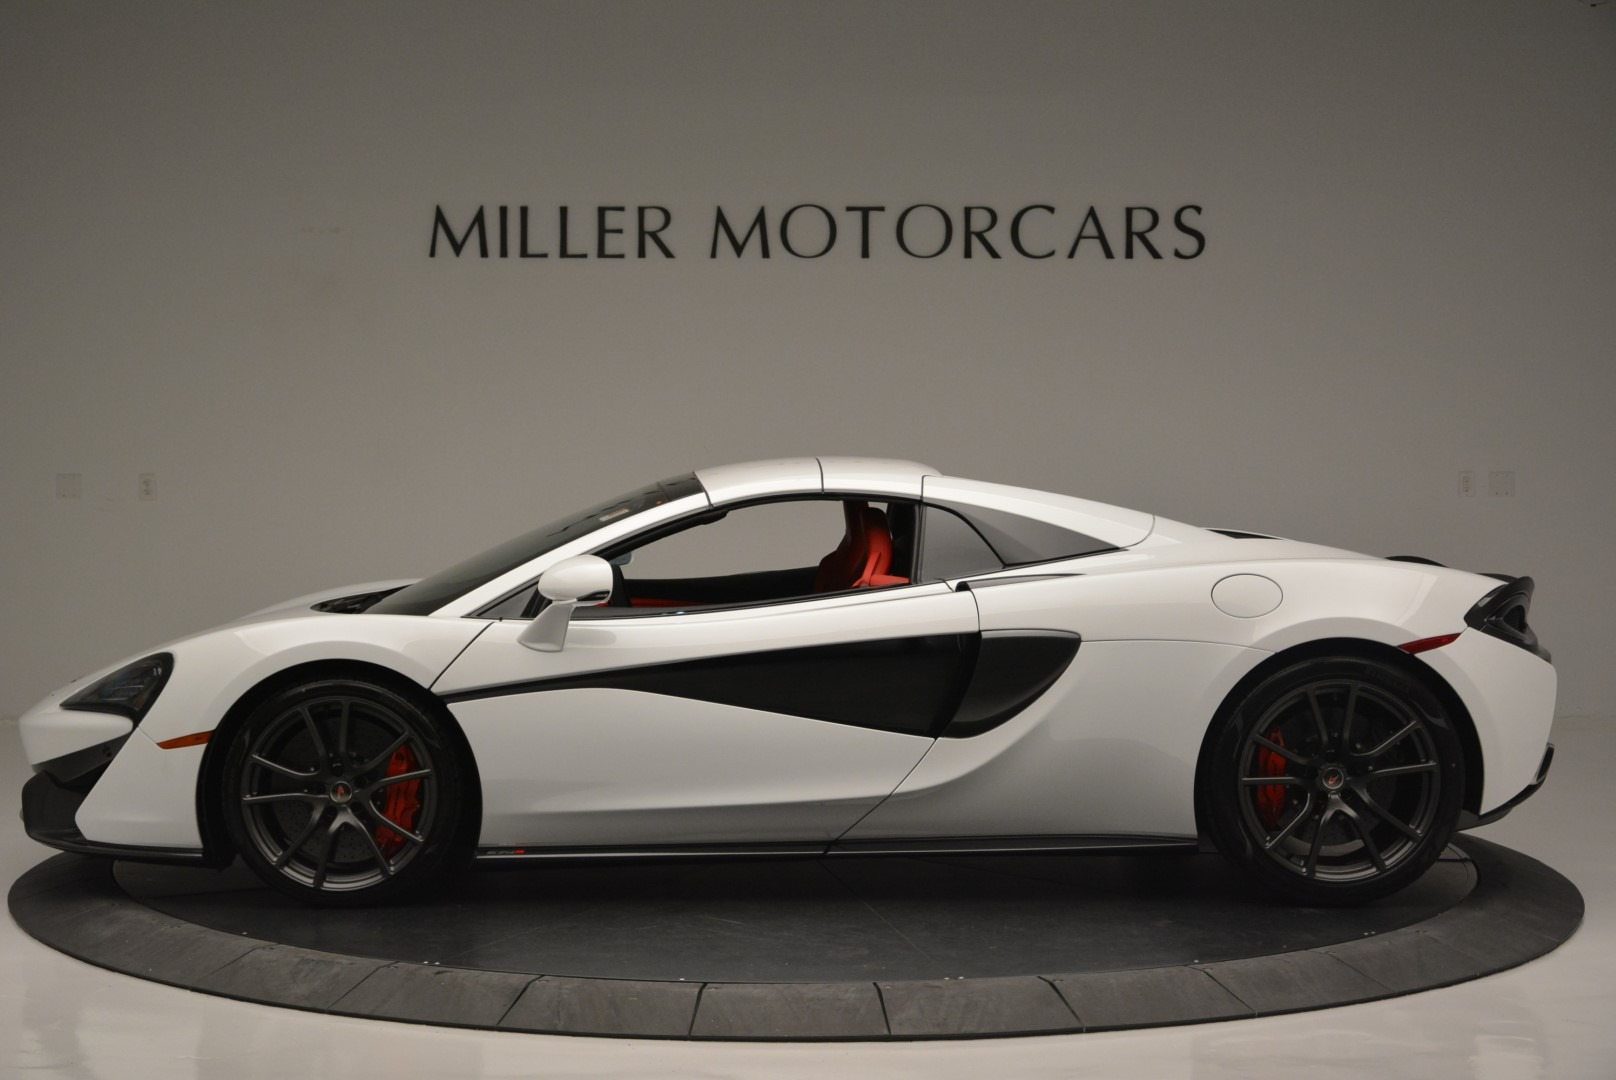 Used 2018 McLaren 570S Spider For Sale In Greenwich, CT. Alfa Romeo of Greenwich, 3149 2341_p15